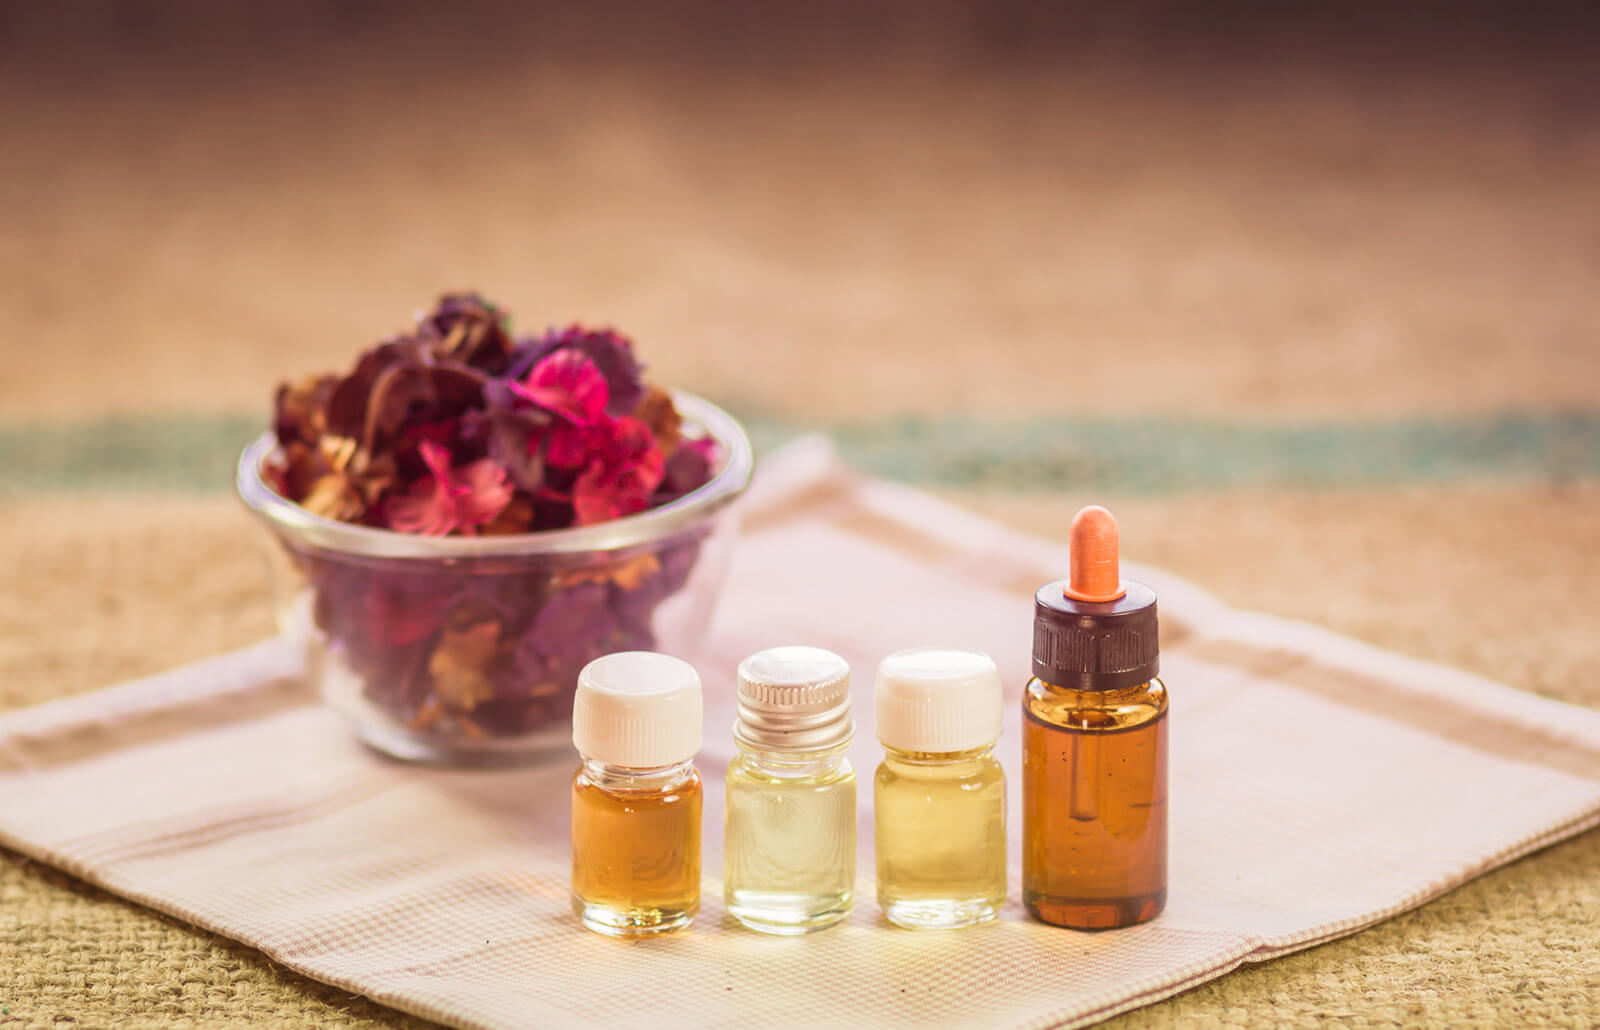 How to Make Essential Oils | LoveToKnow